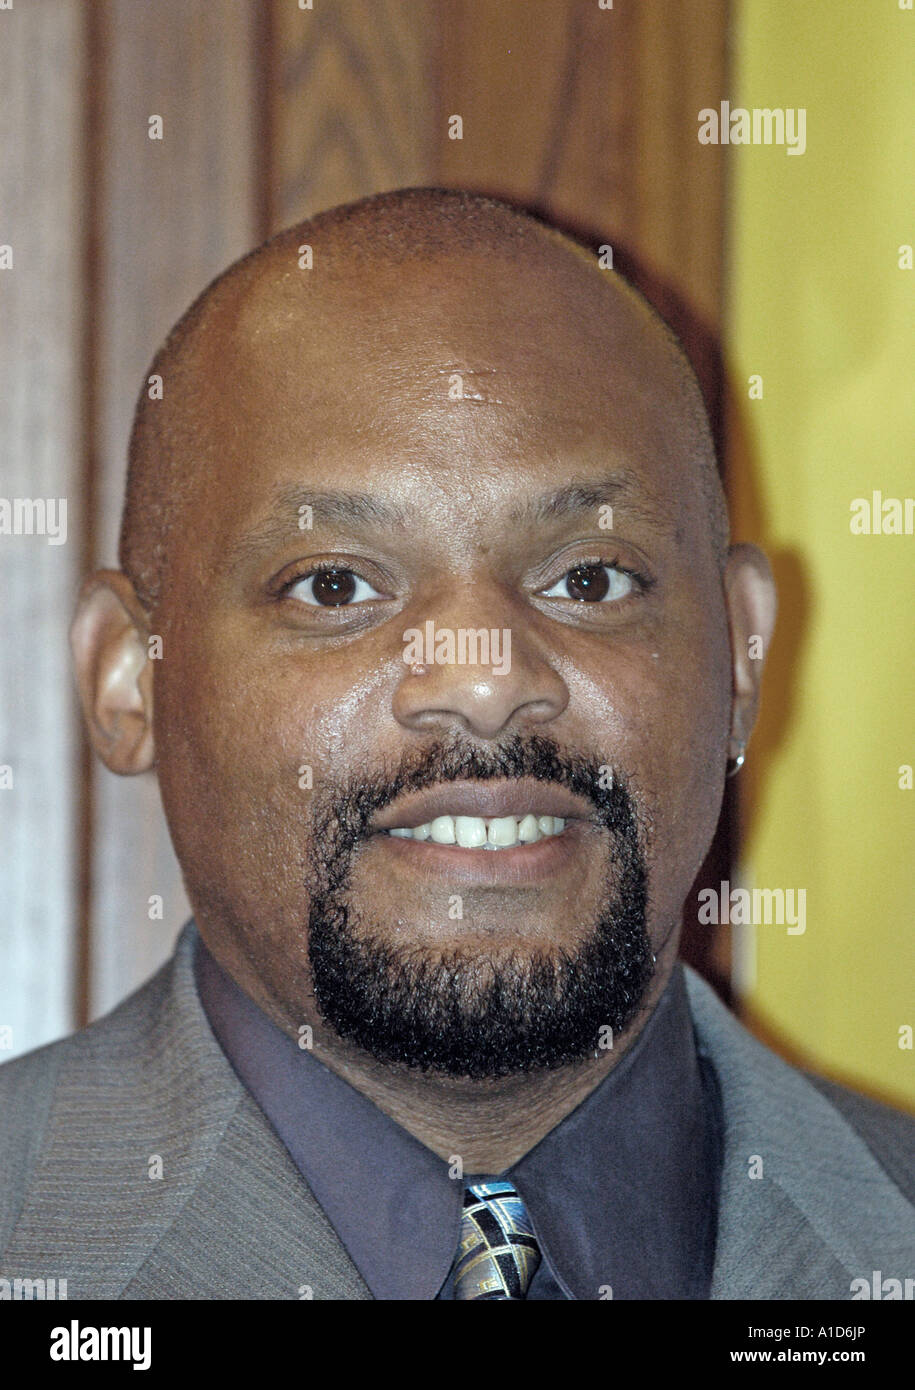 Cecil Fielder a former major league baseball player attends an MBC Network news briefing. - Stock Image